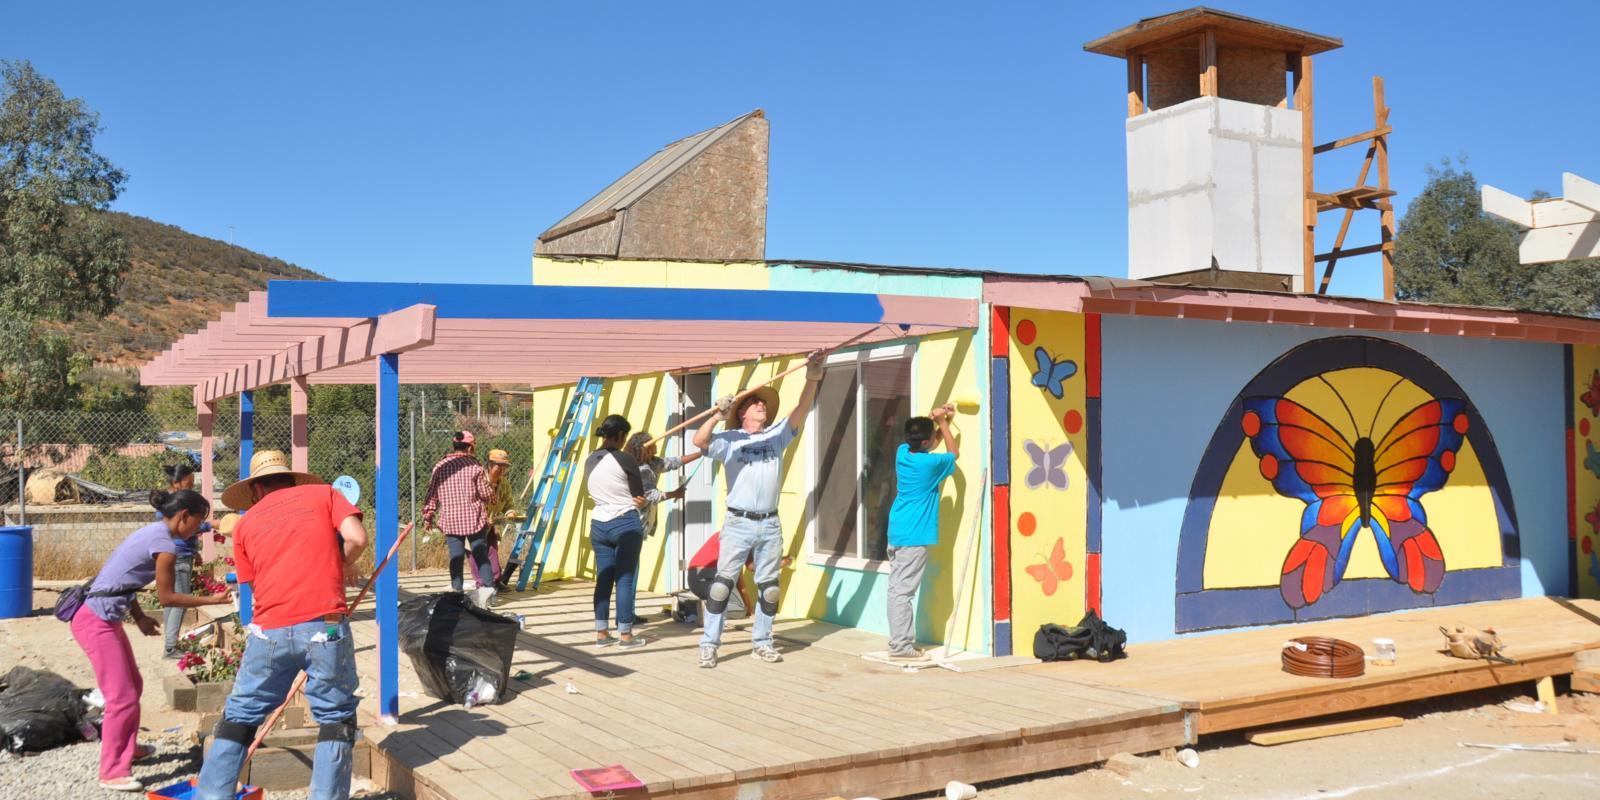 Lyle Center students and Cerro Azul residents built the town's low-cost sustainable community center